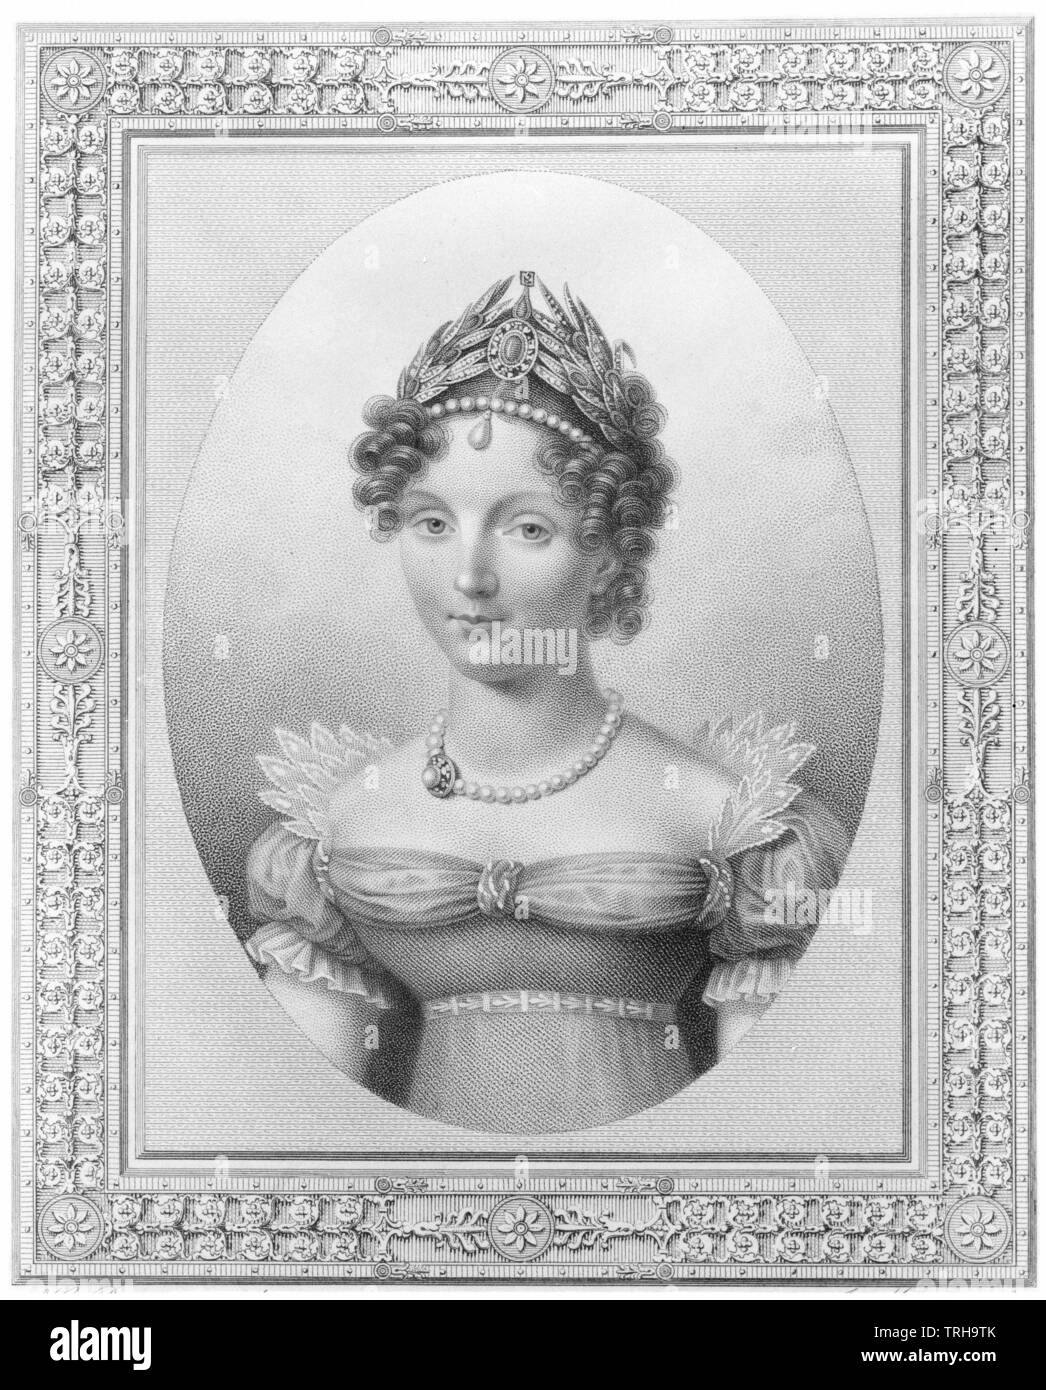 Louise Marie Auguste, princess of Baden 1779 - 1826, picture of the princess Louise Marie Auguste in oval in rectangular ornate frame. stipple engraving by Joseph Mecou based on painting by Henri Benner. Russian and French legend. repro negative based on stipple engraving, Additional-Rights-Clearance-Info-Not-Available - Stock Image